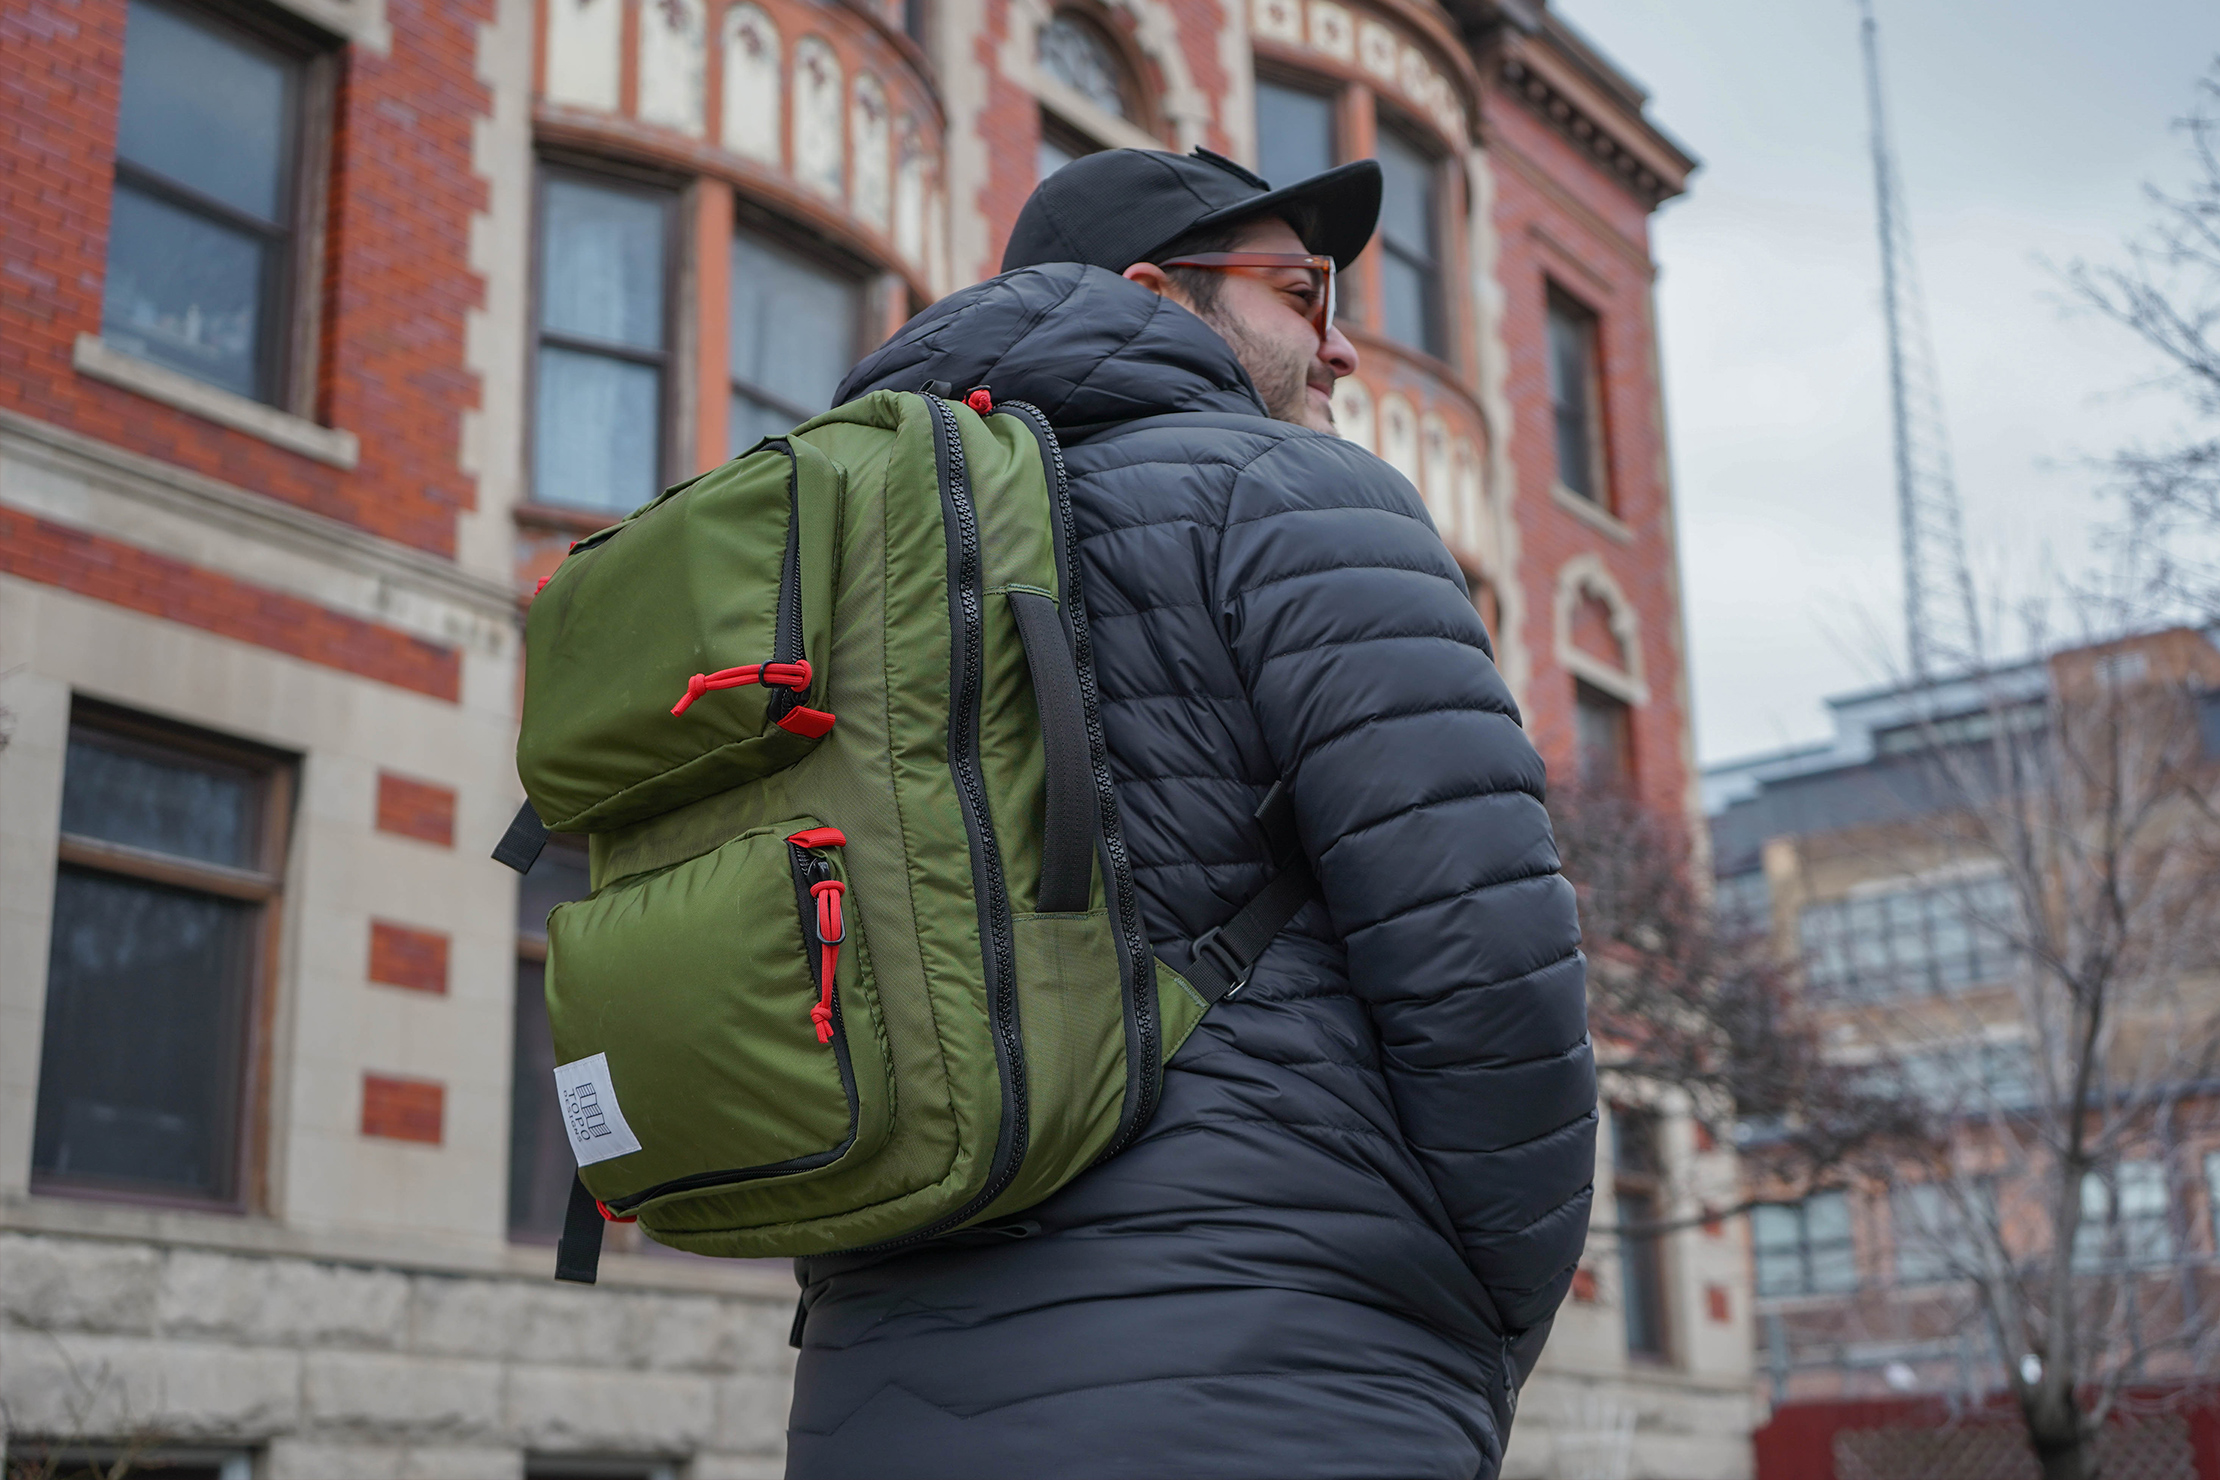 Topo Designs Global Briefcase 3-Day Backpack Carry